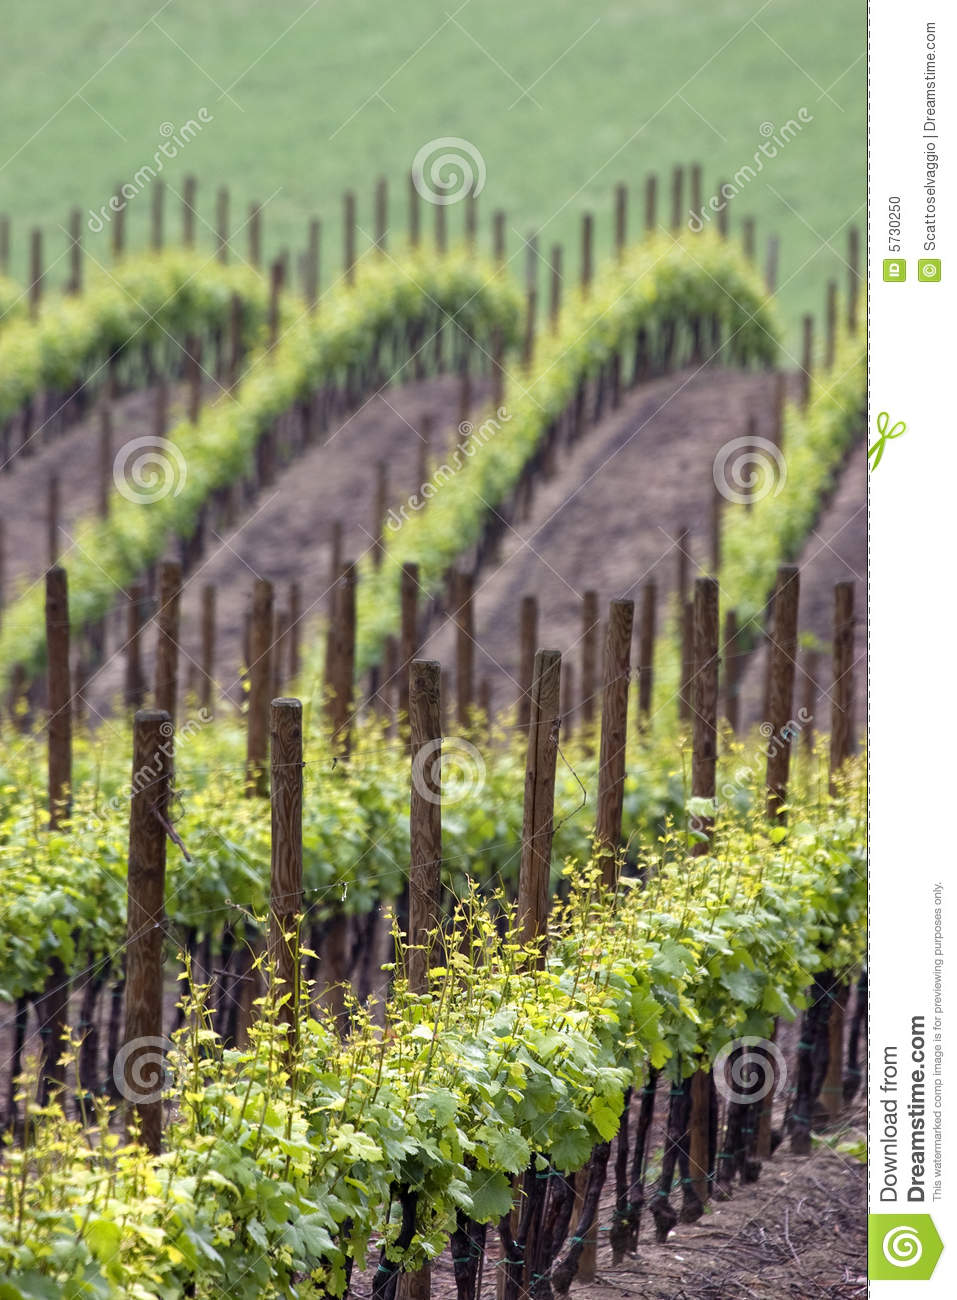 Vineyards wawes in spring. Colors of spring vineyard in the Ghiaie valley, Calvignano, Oltrepo pavese, Pavia, Italy.